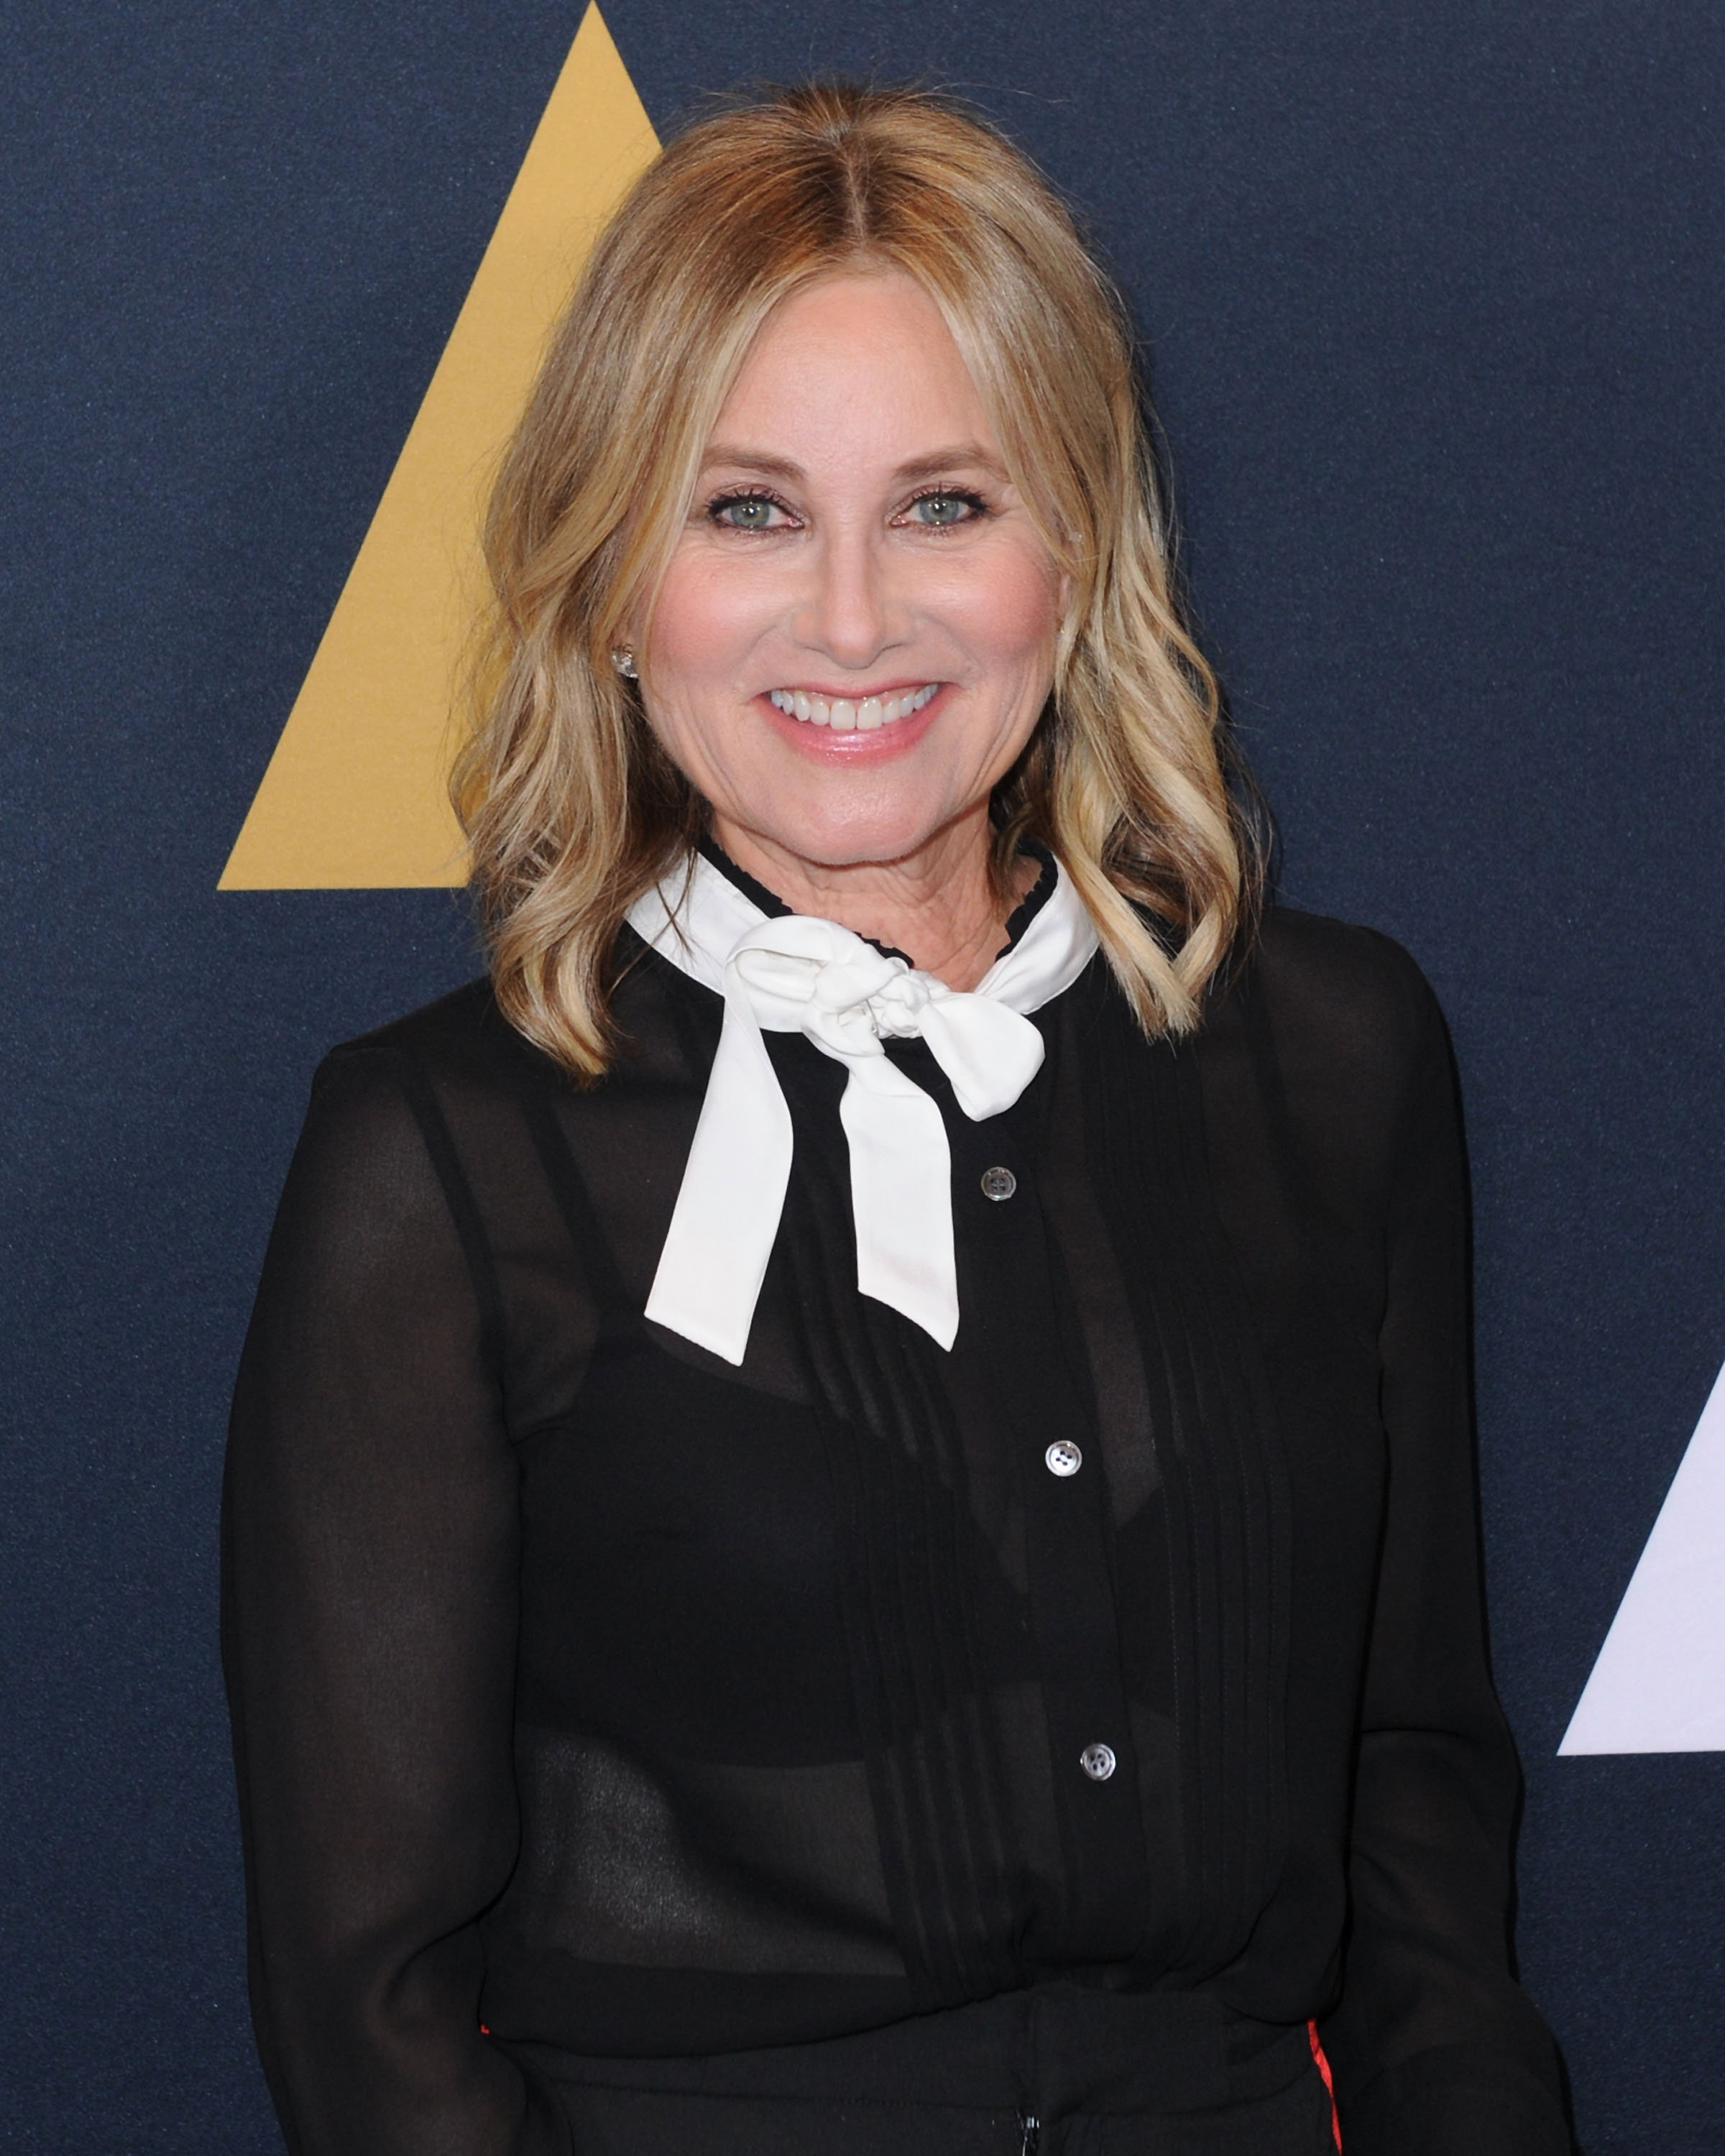 Maureen McCormick attends The Academy Celebrates Filmmaker Richard Donner in Beverly Hills, California on June 7, 2017 | Photo: Getty Images